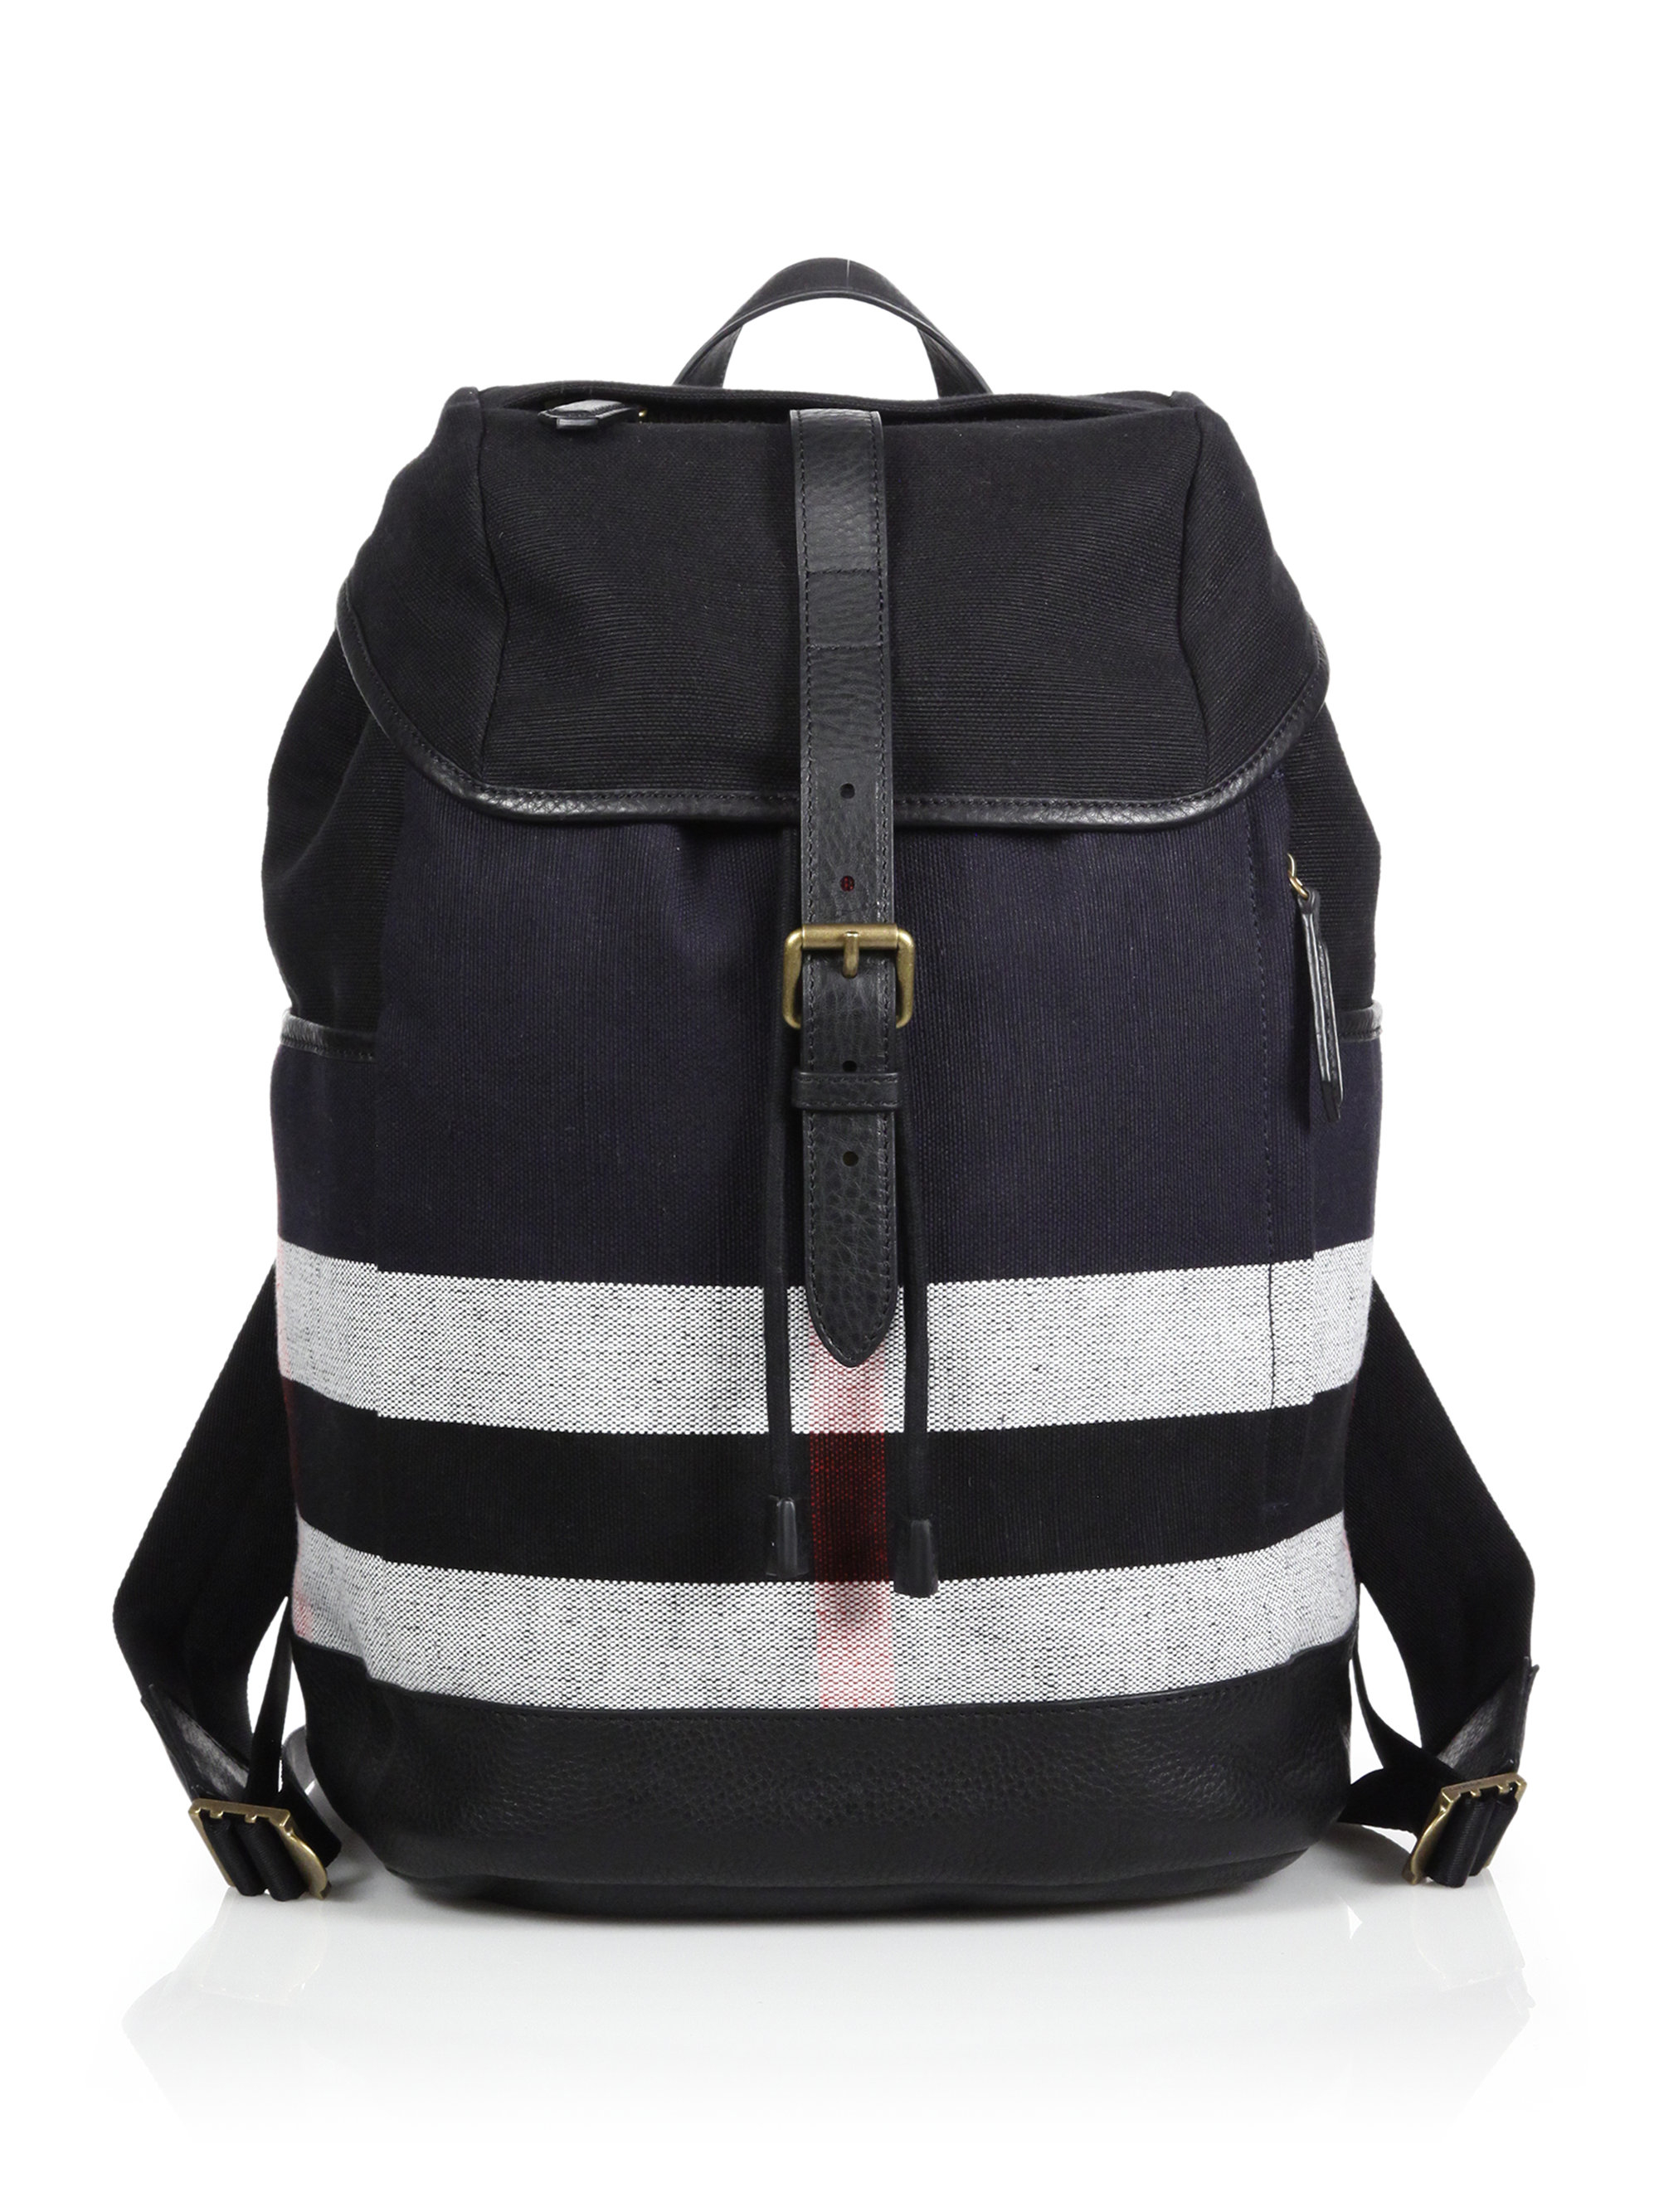 Burberry Canvas Check Leather-Trimmed Backpack in Black for Men | Lyst